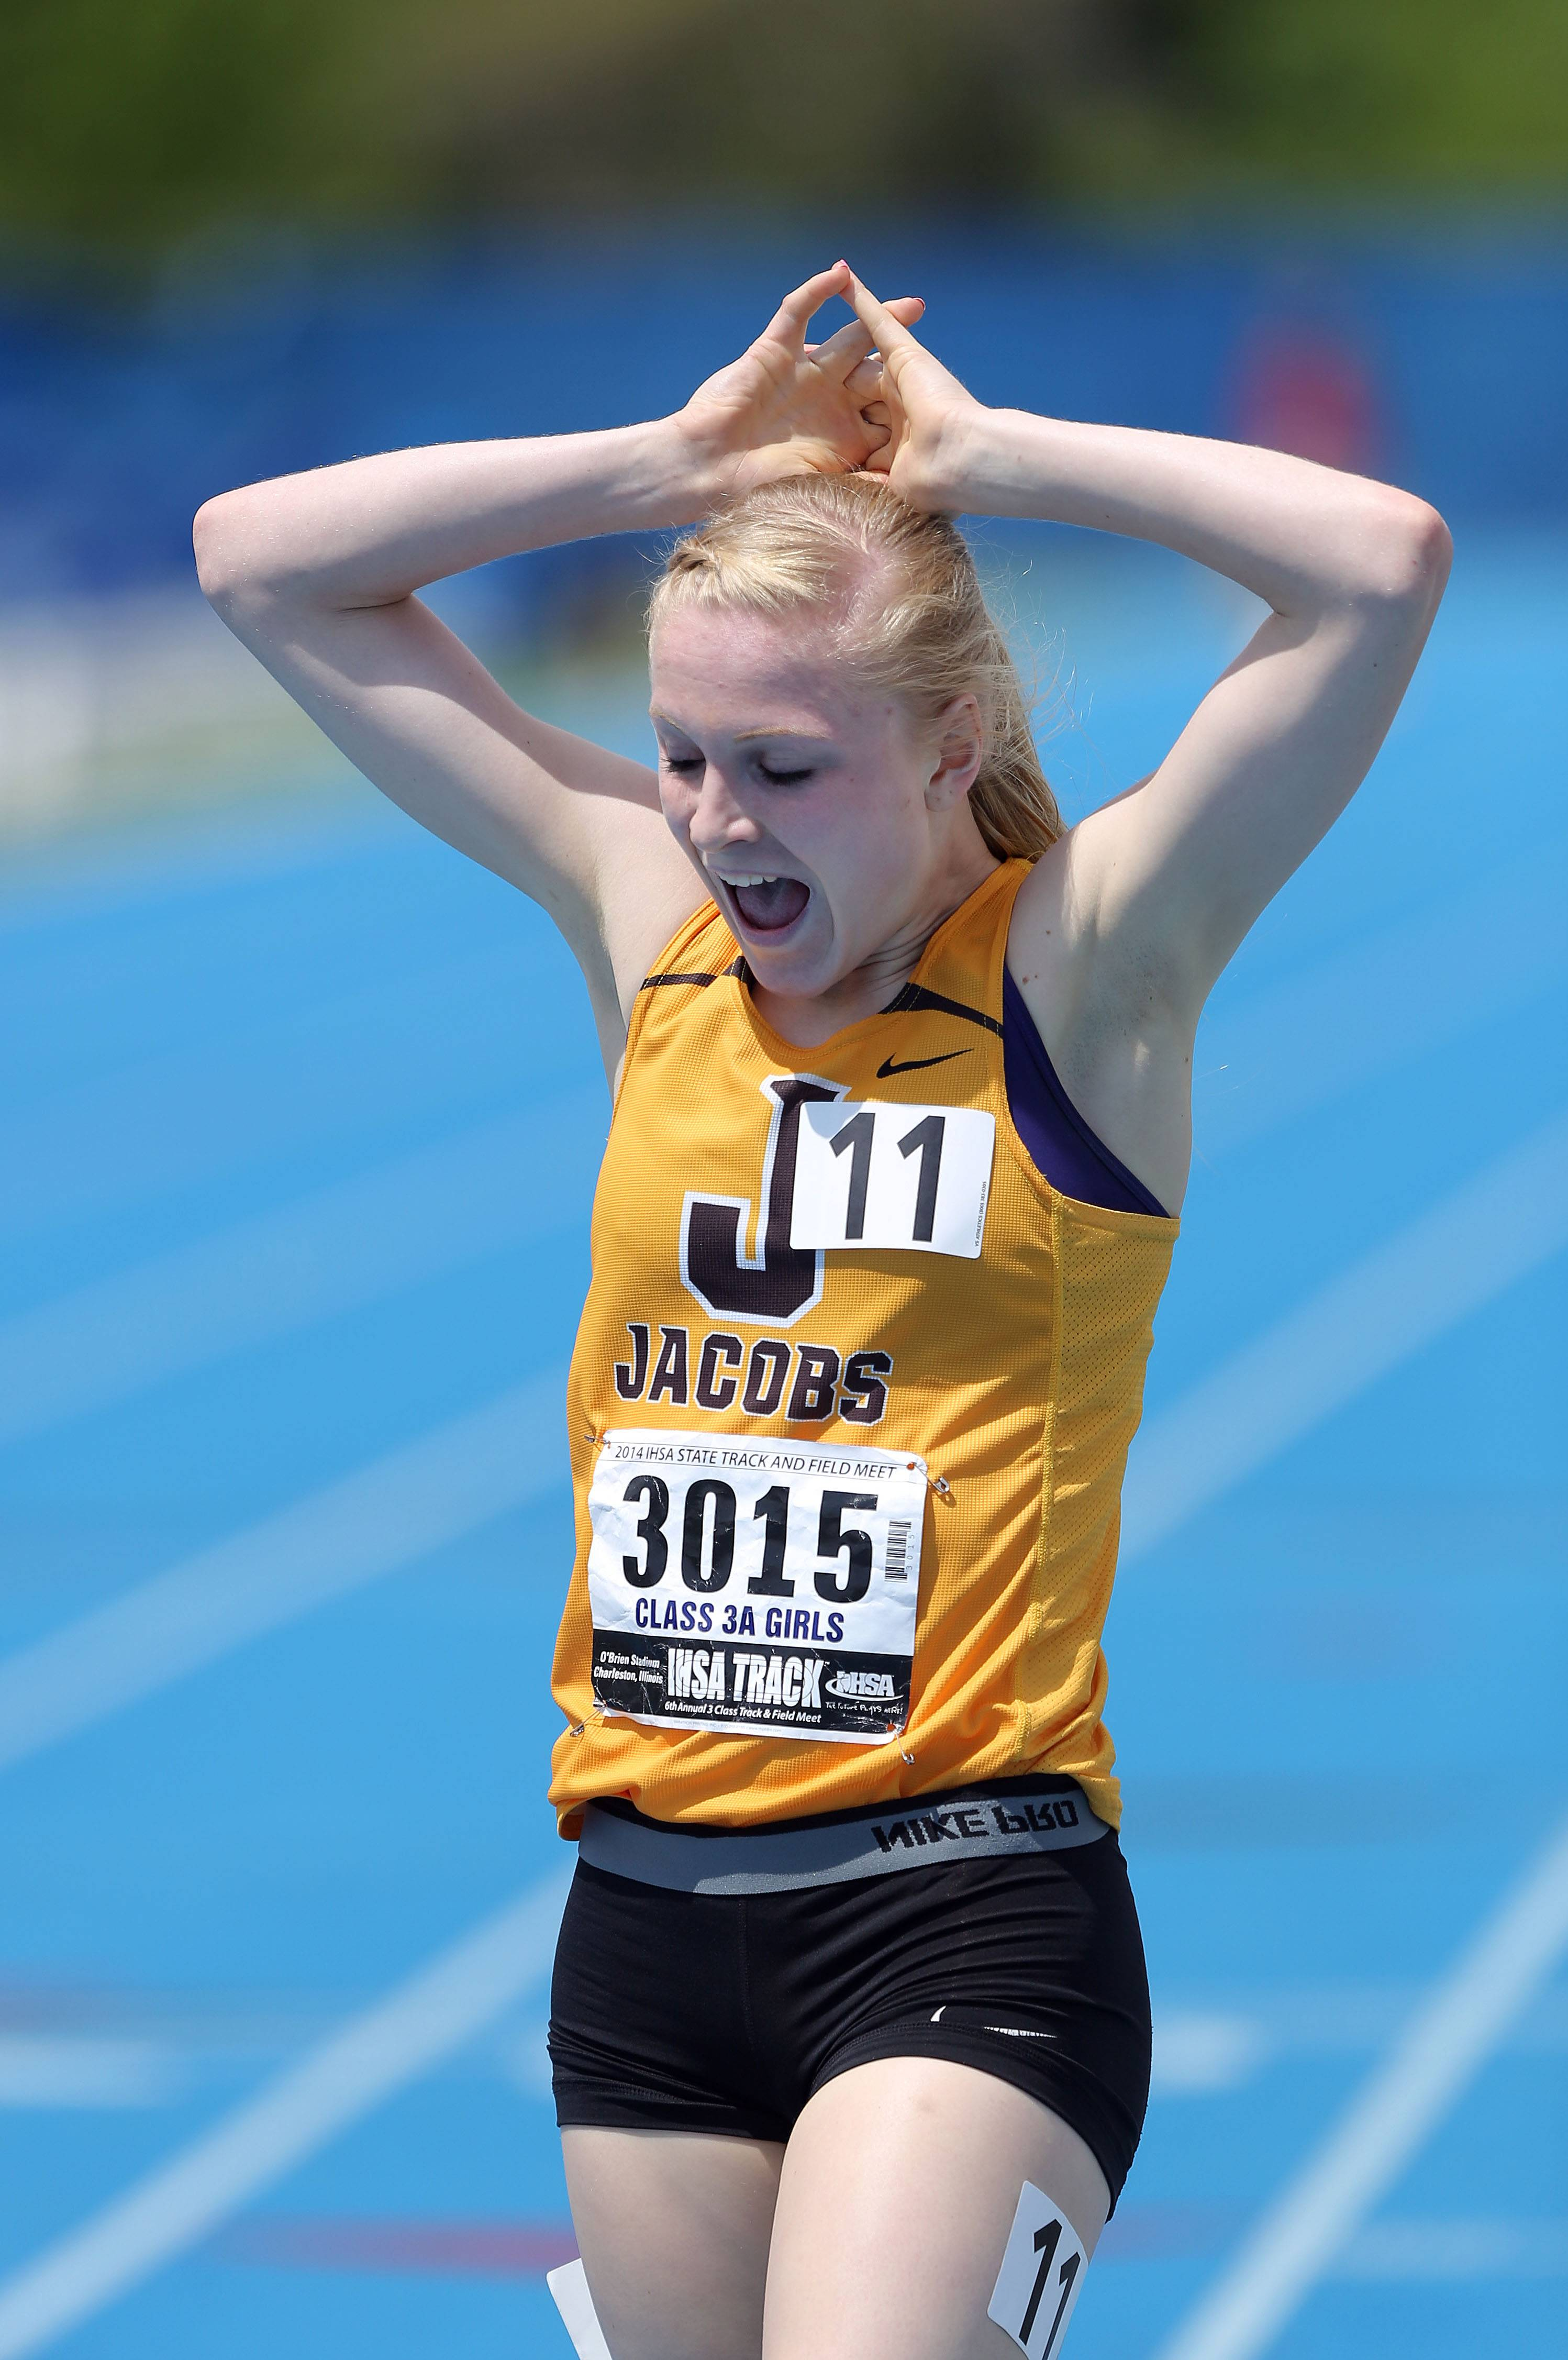 Jacobs Lauren Van Vlierbergen reacts after winning the class 3A 800-meter run during girls track and field state finals at Eastern Illinois University in Charleston Saturday.